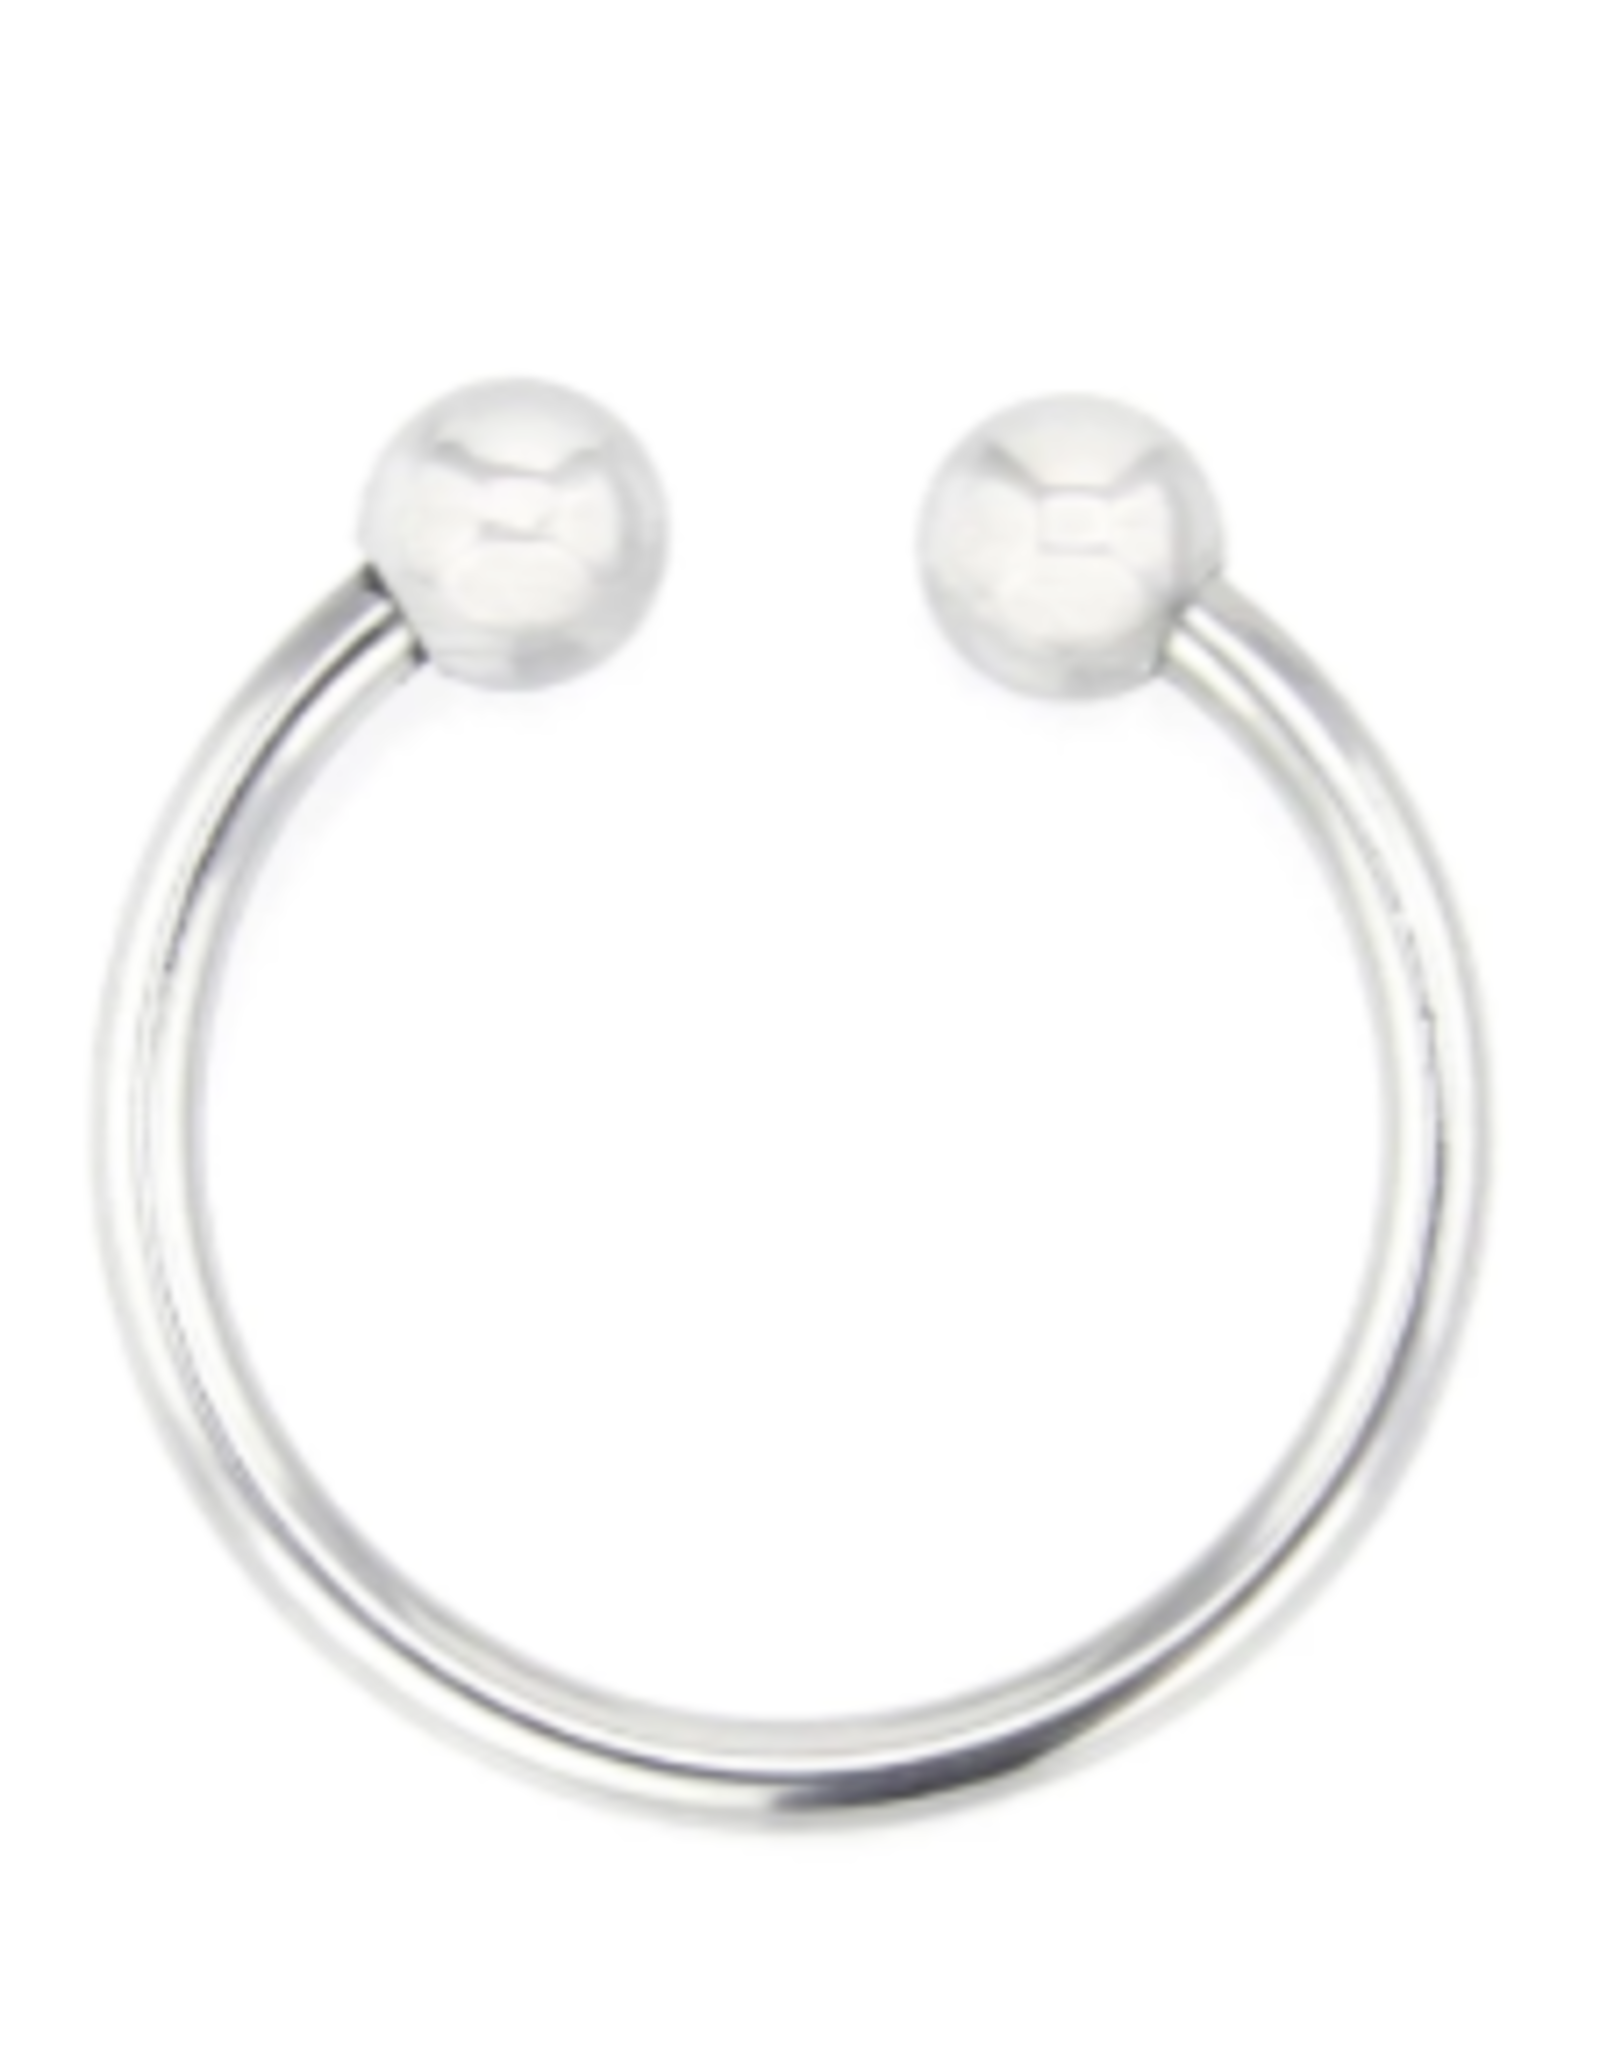 Ego Driven Ego Driven Horse Shoe Cock Ring - 45mm